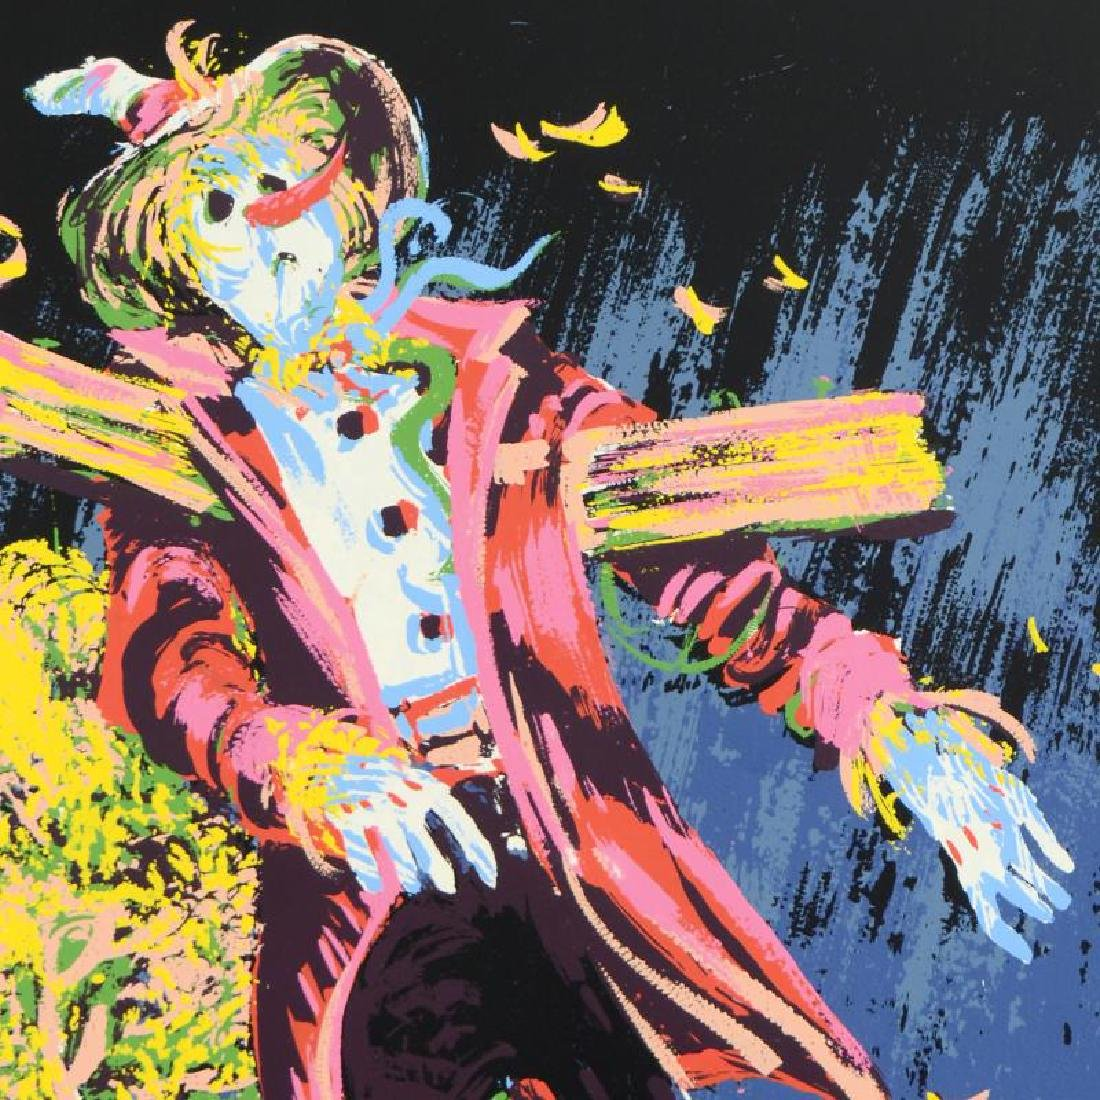 Scare Crow Limited Edition Serigraph by Paul Blaine - 4